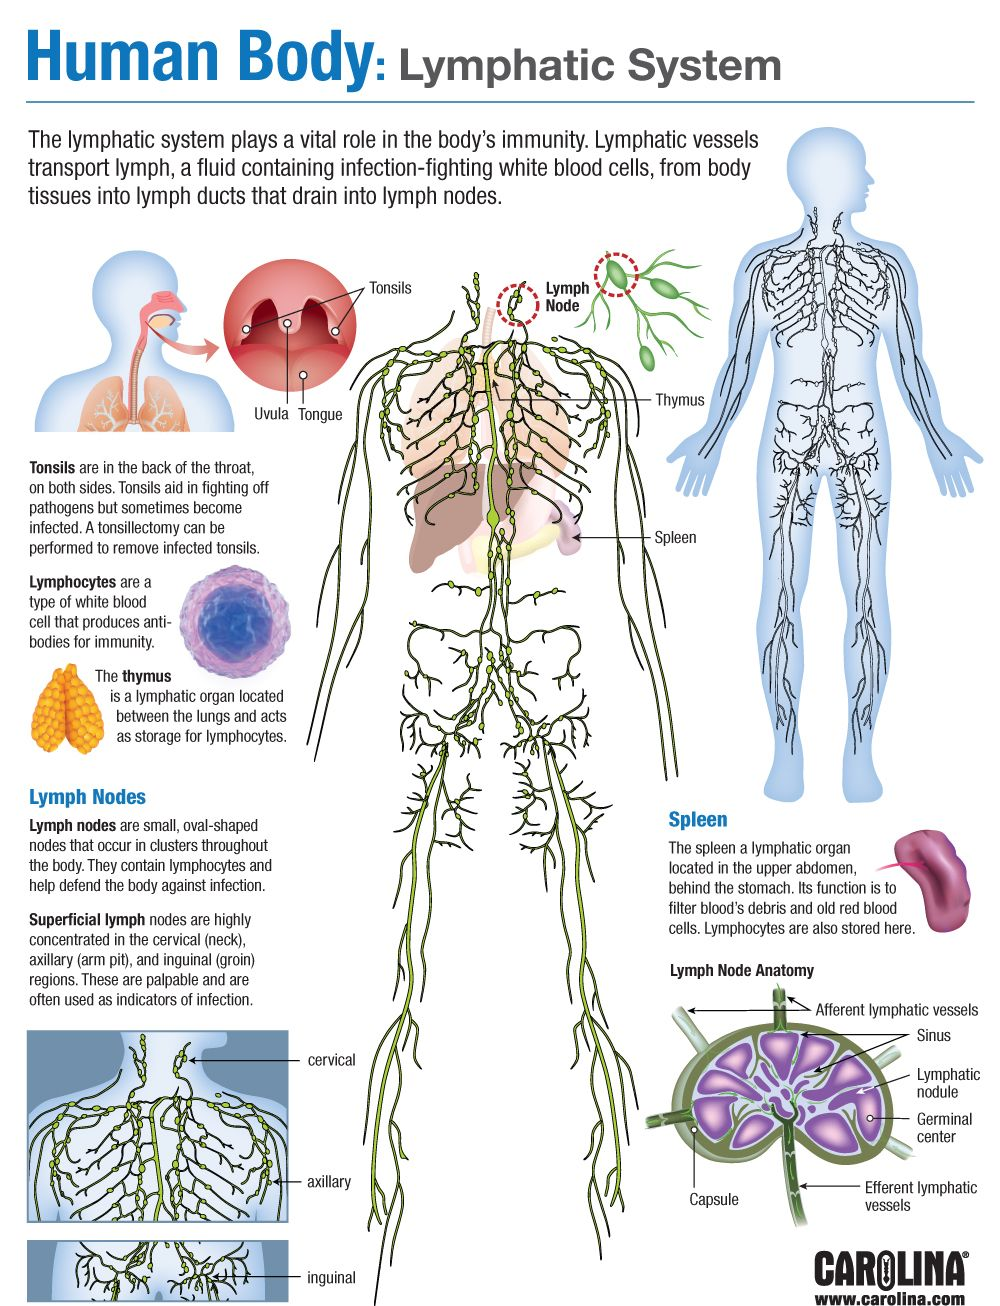 Human Body Lymphatic System Carolina